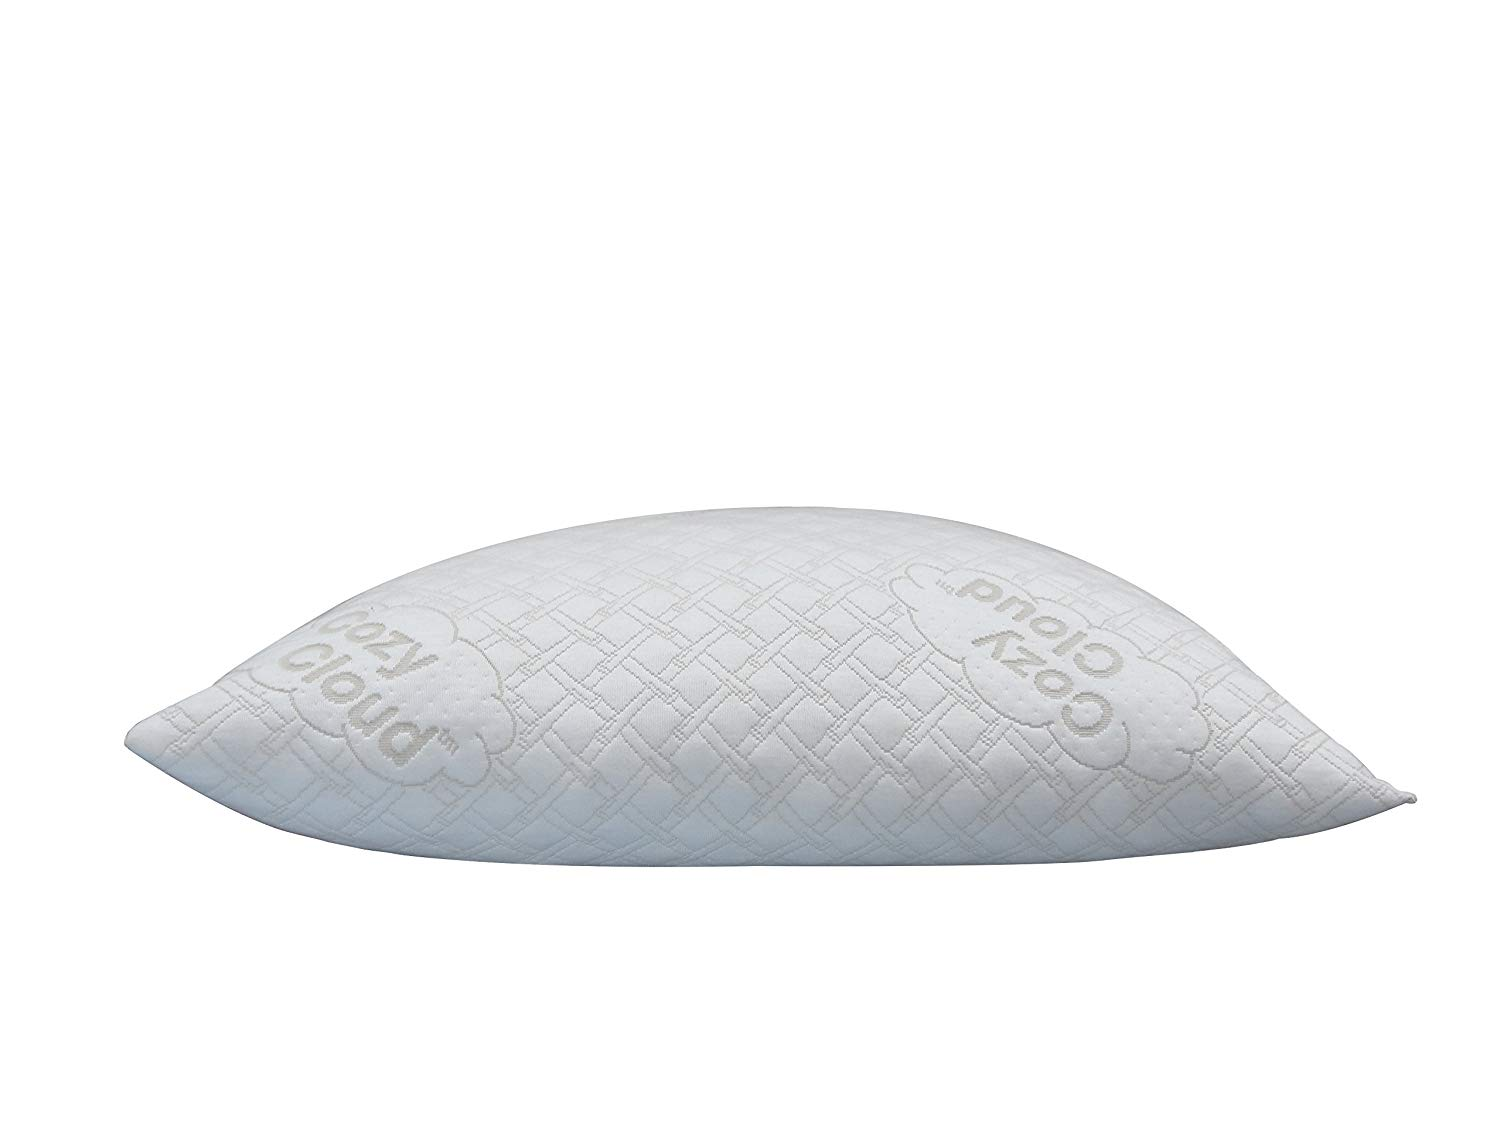 CozyCloud Bamboo Shredded Memory Foam Pillow (Queen) Review